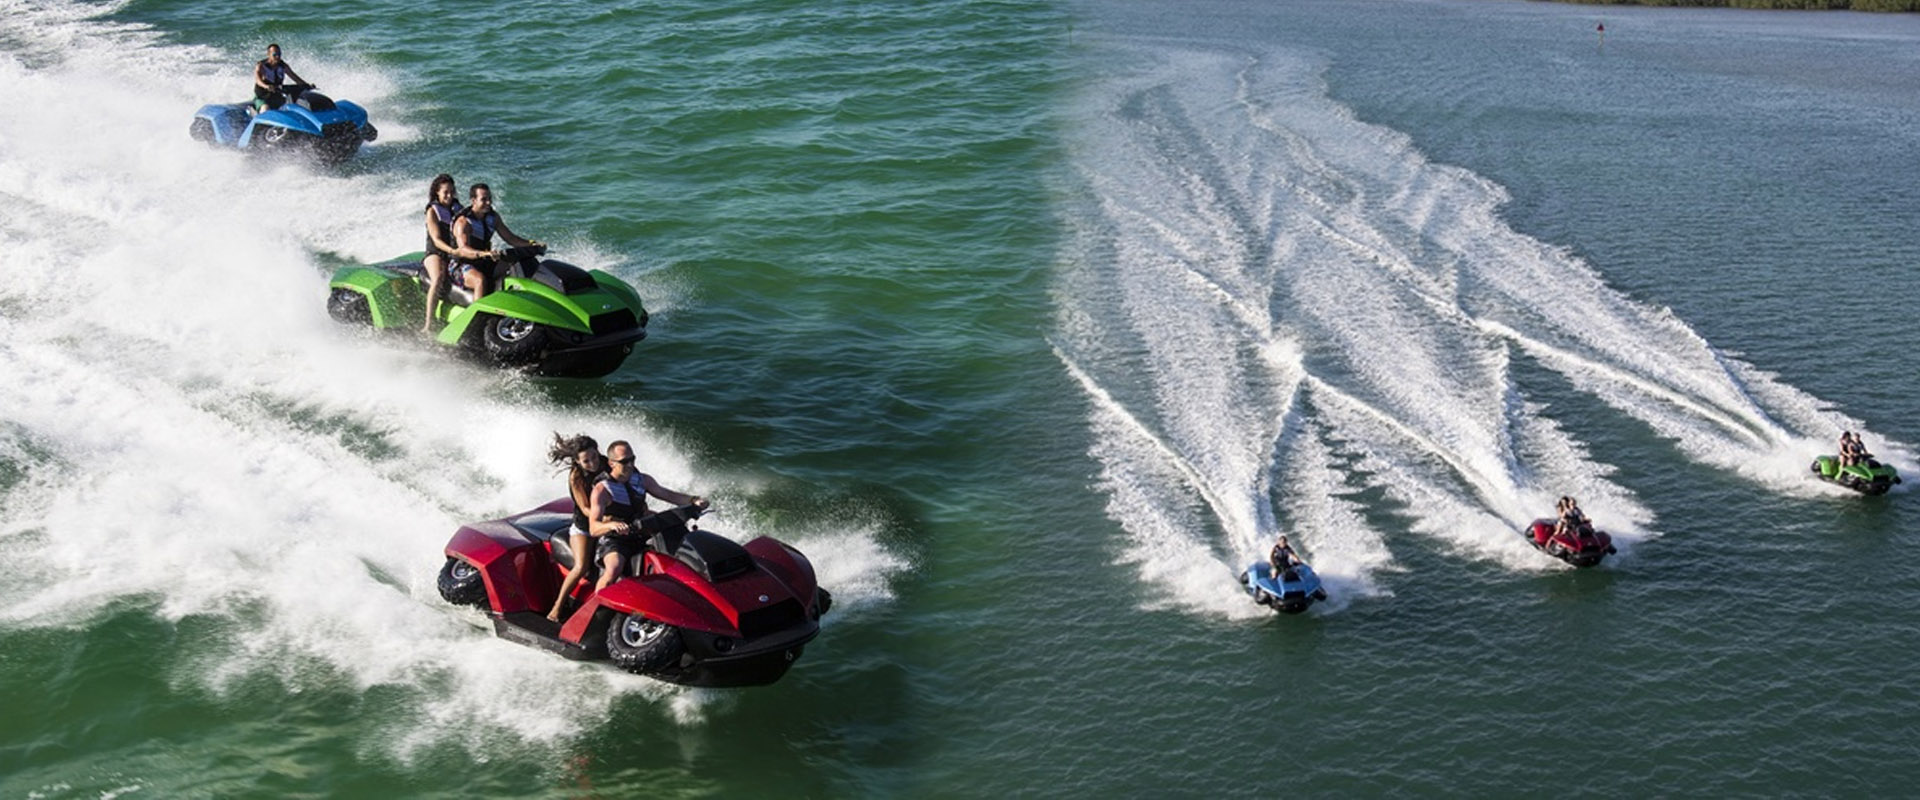 Quadski XL Overview by Navnit Marine in Mumbai.